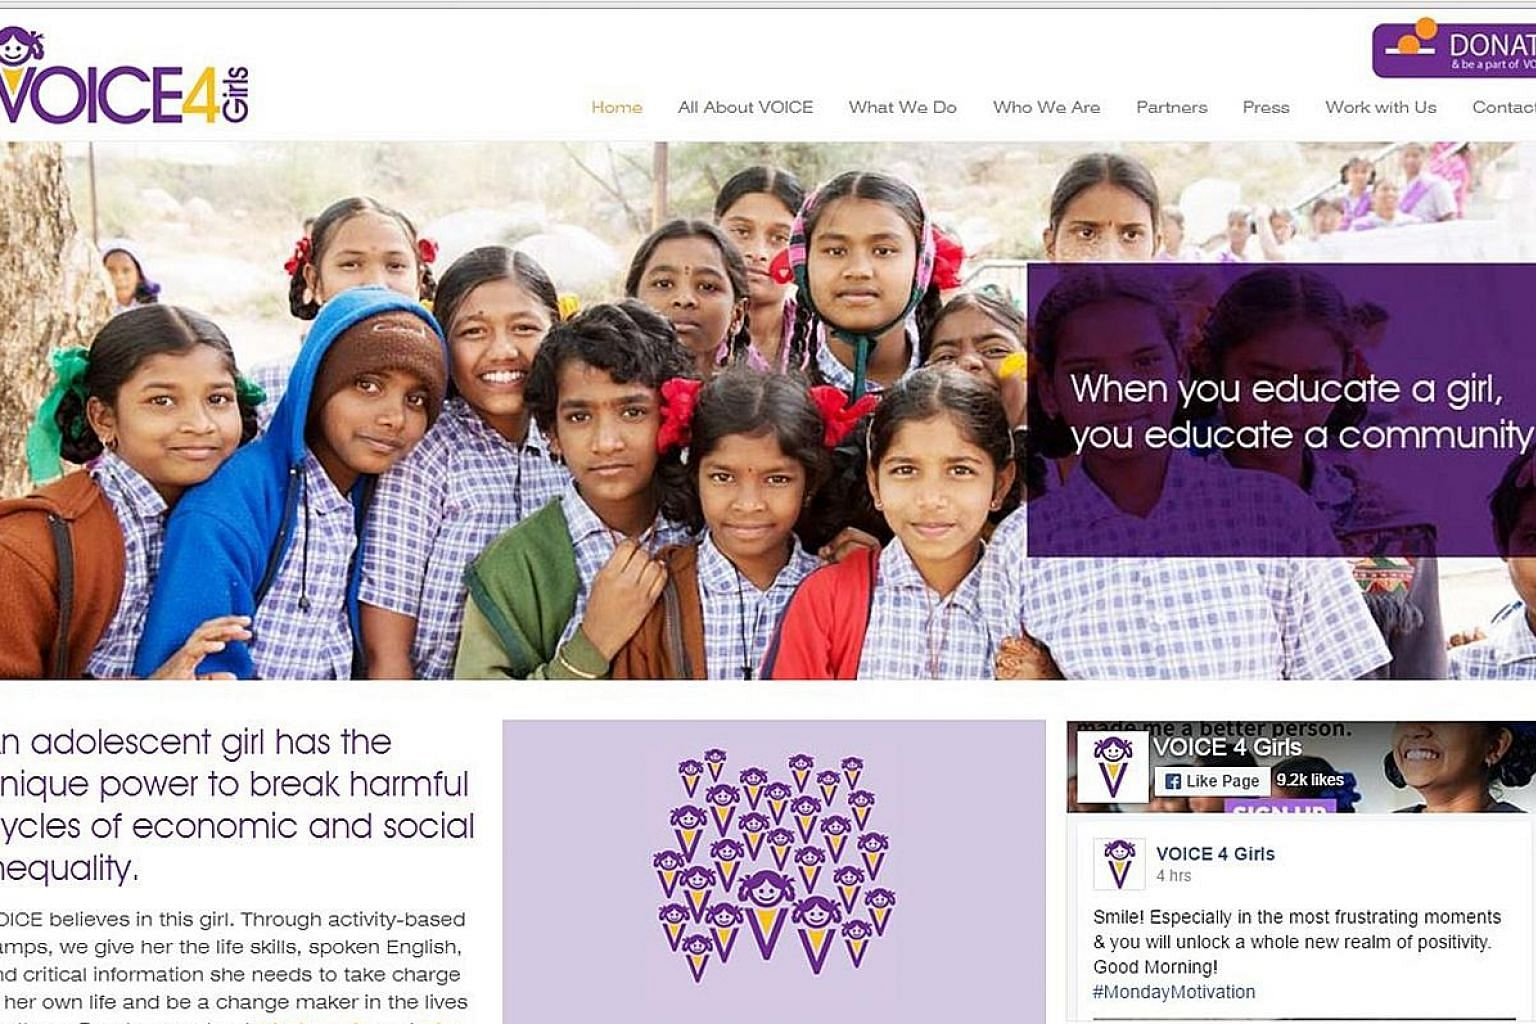 A screenshot from the Voice4Girls.Org website. VOICE 4 Girls is a social enterprise based in Hyderabad. It organises camps to teach girls about health, menstruation, puberty, legal rights, gender, future planning, financial literacy, sexual health, v